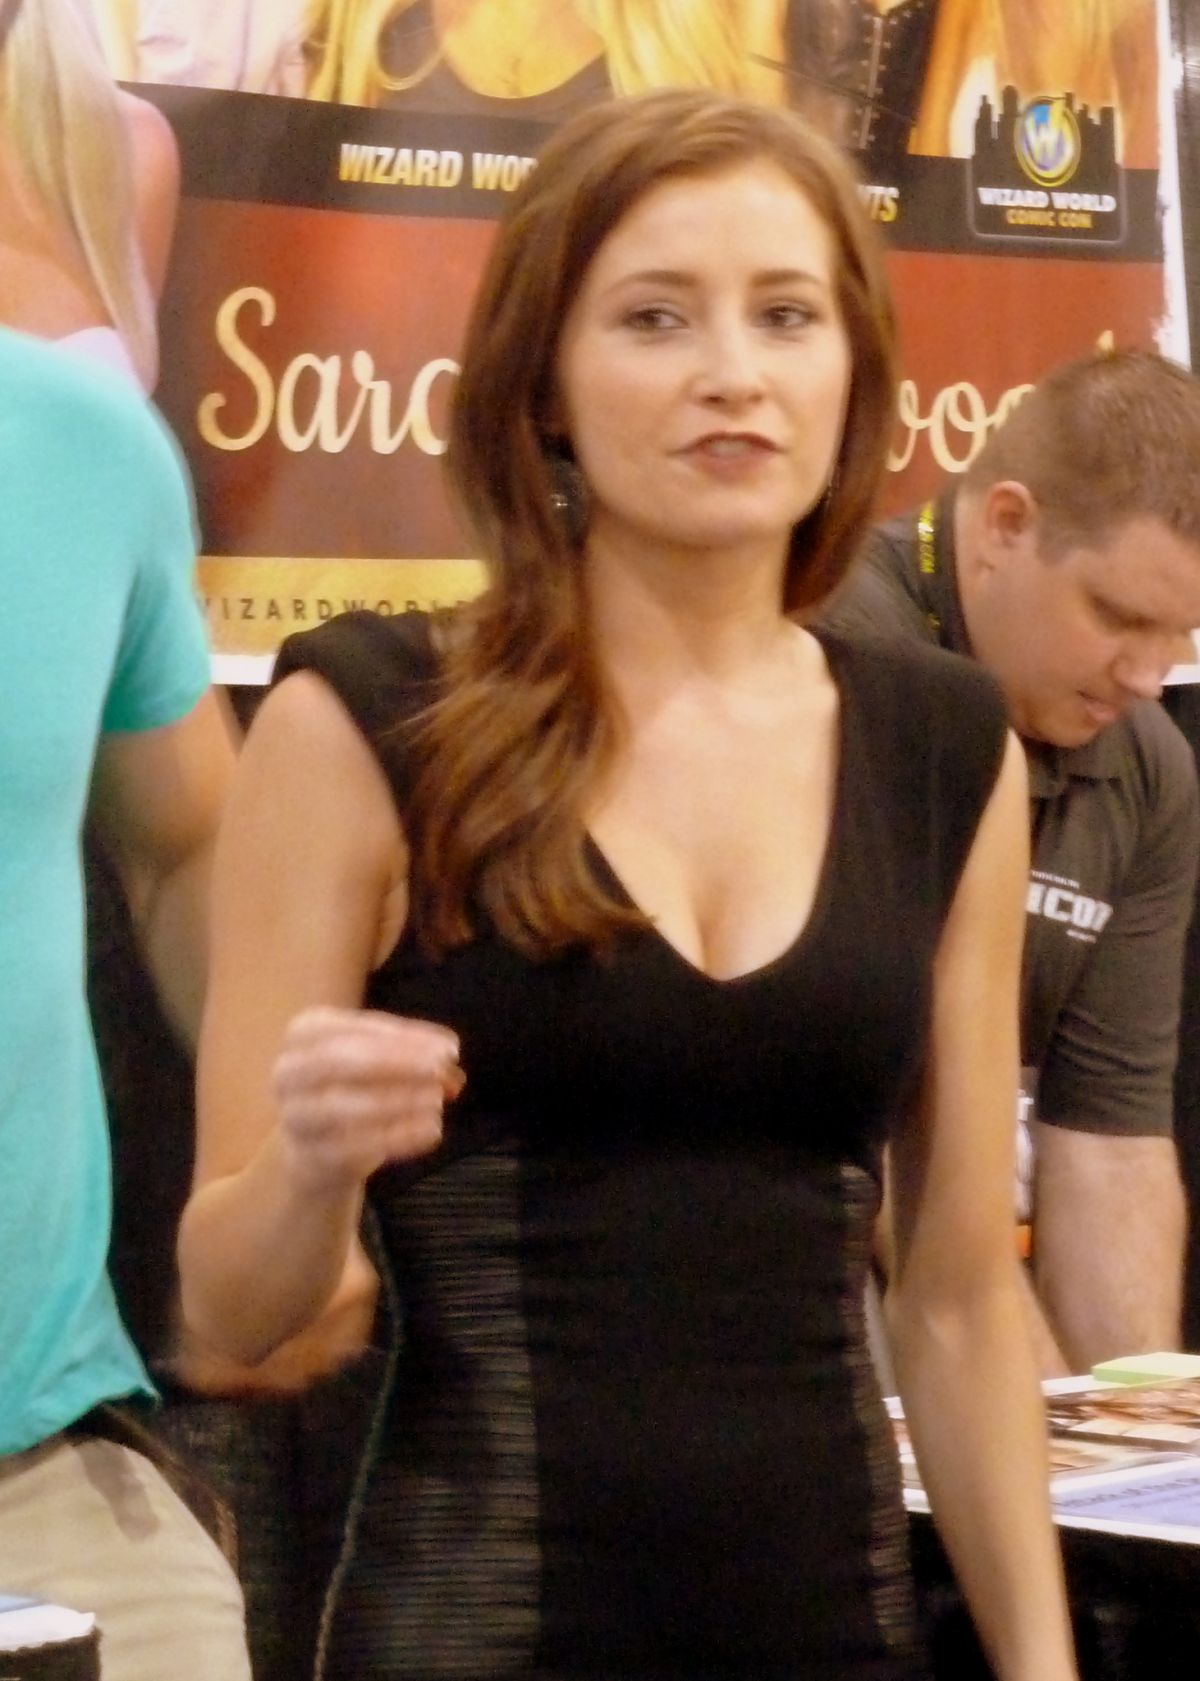 Candace Bailey And Sara Jean Underwood At The Philadelphia Comic Con